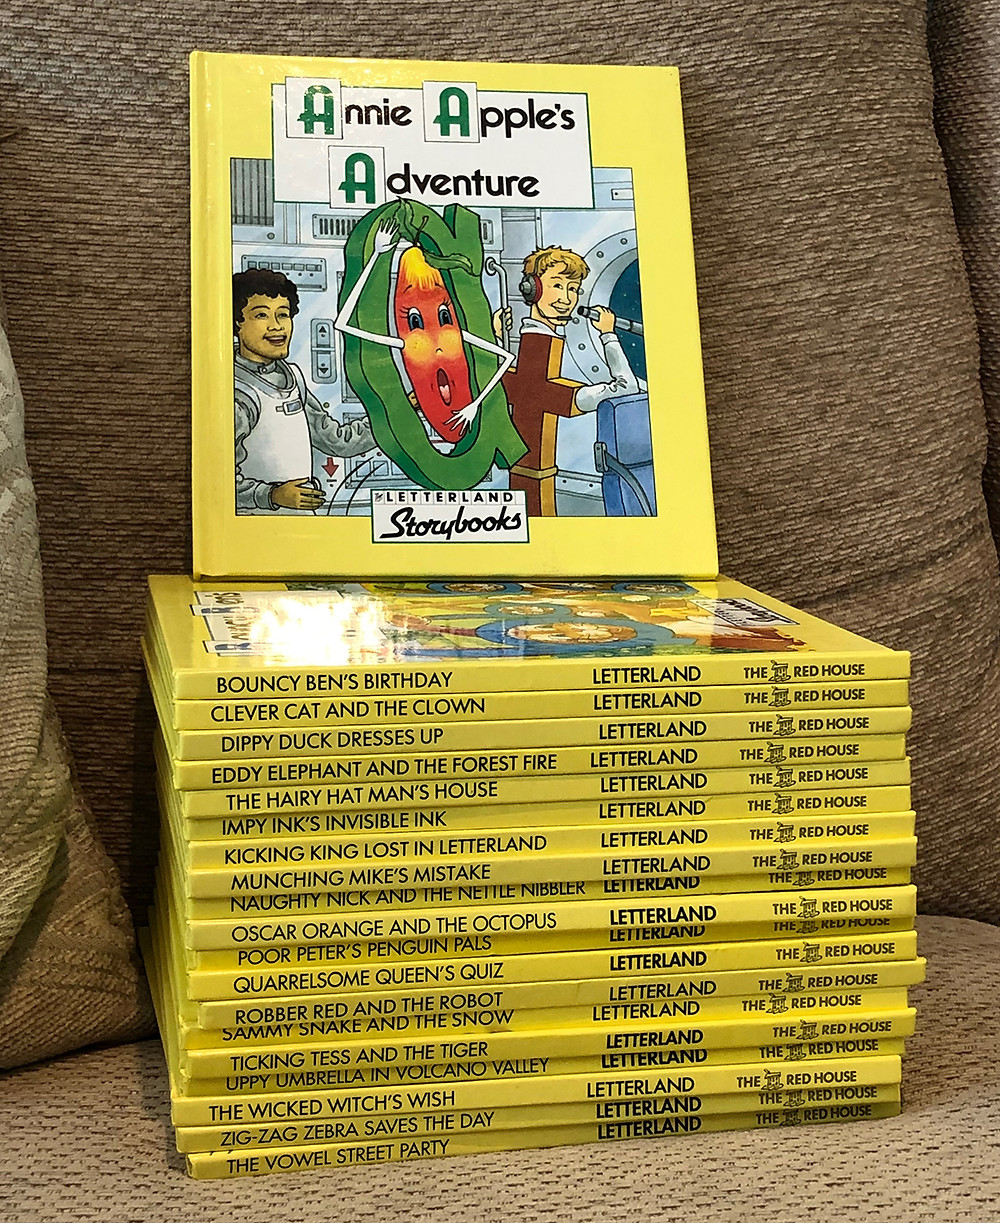 The whole collection of the Letterland Storybooks starting with Annie Apple's Adventure